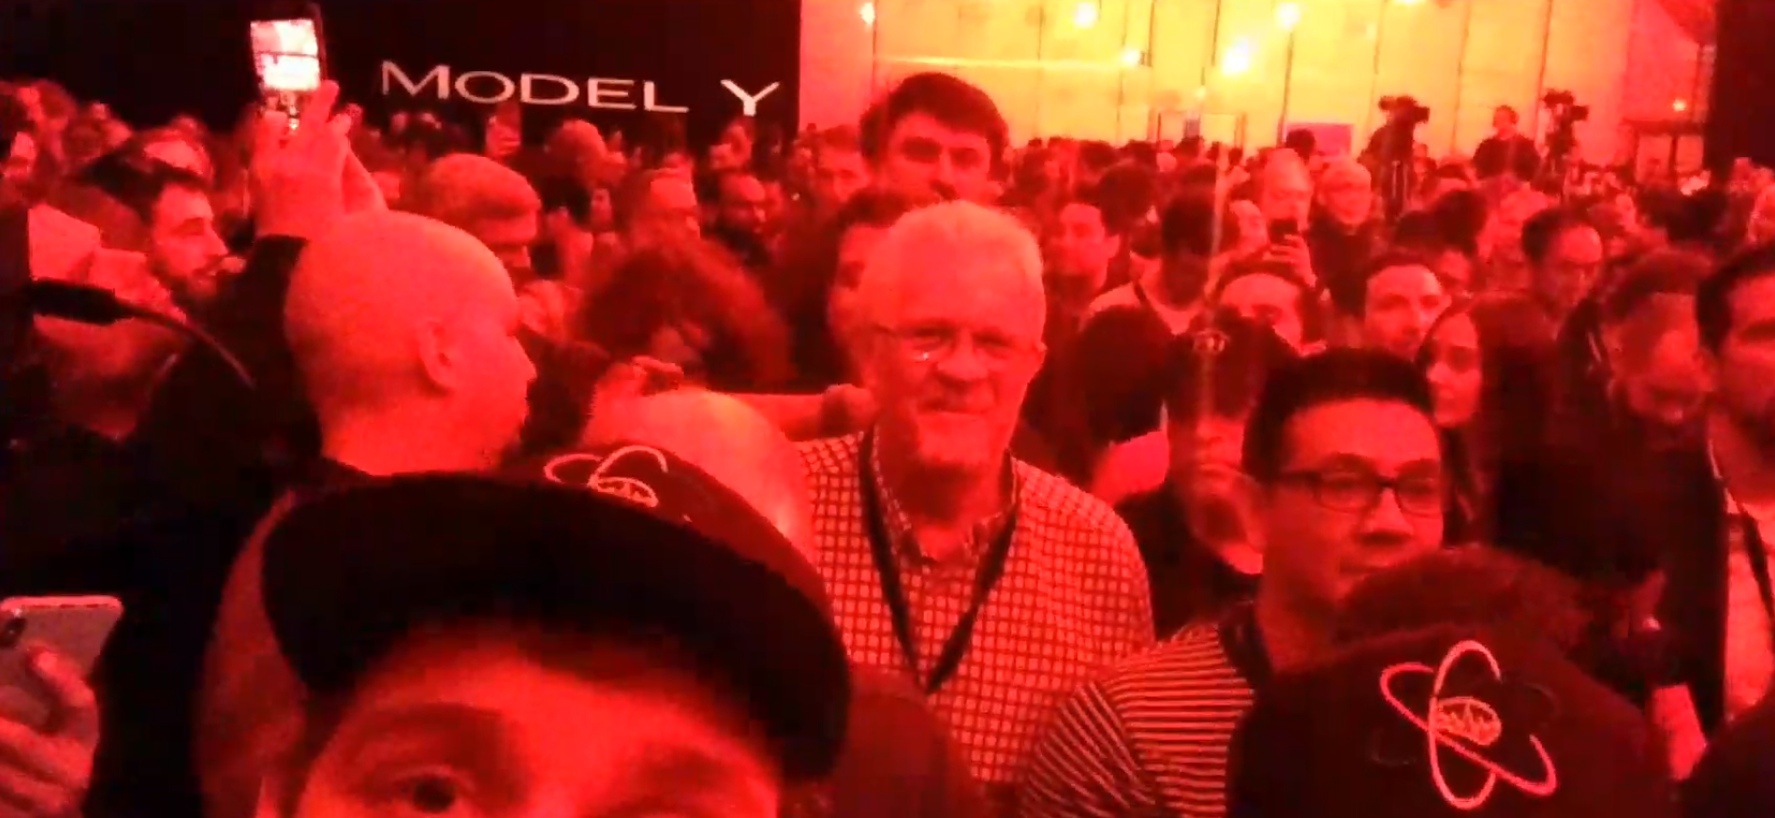 Model Y Unveiling - Crowd